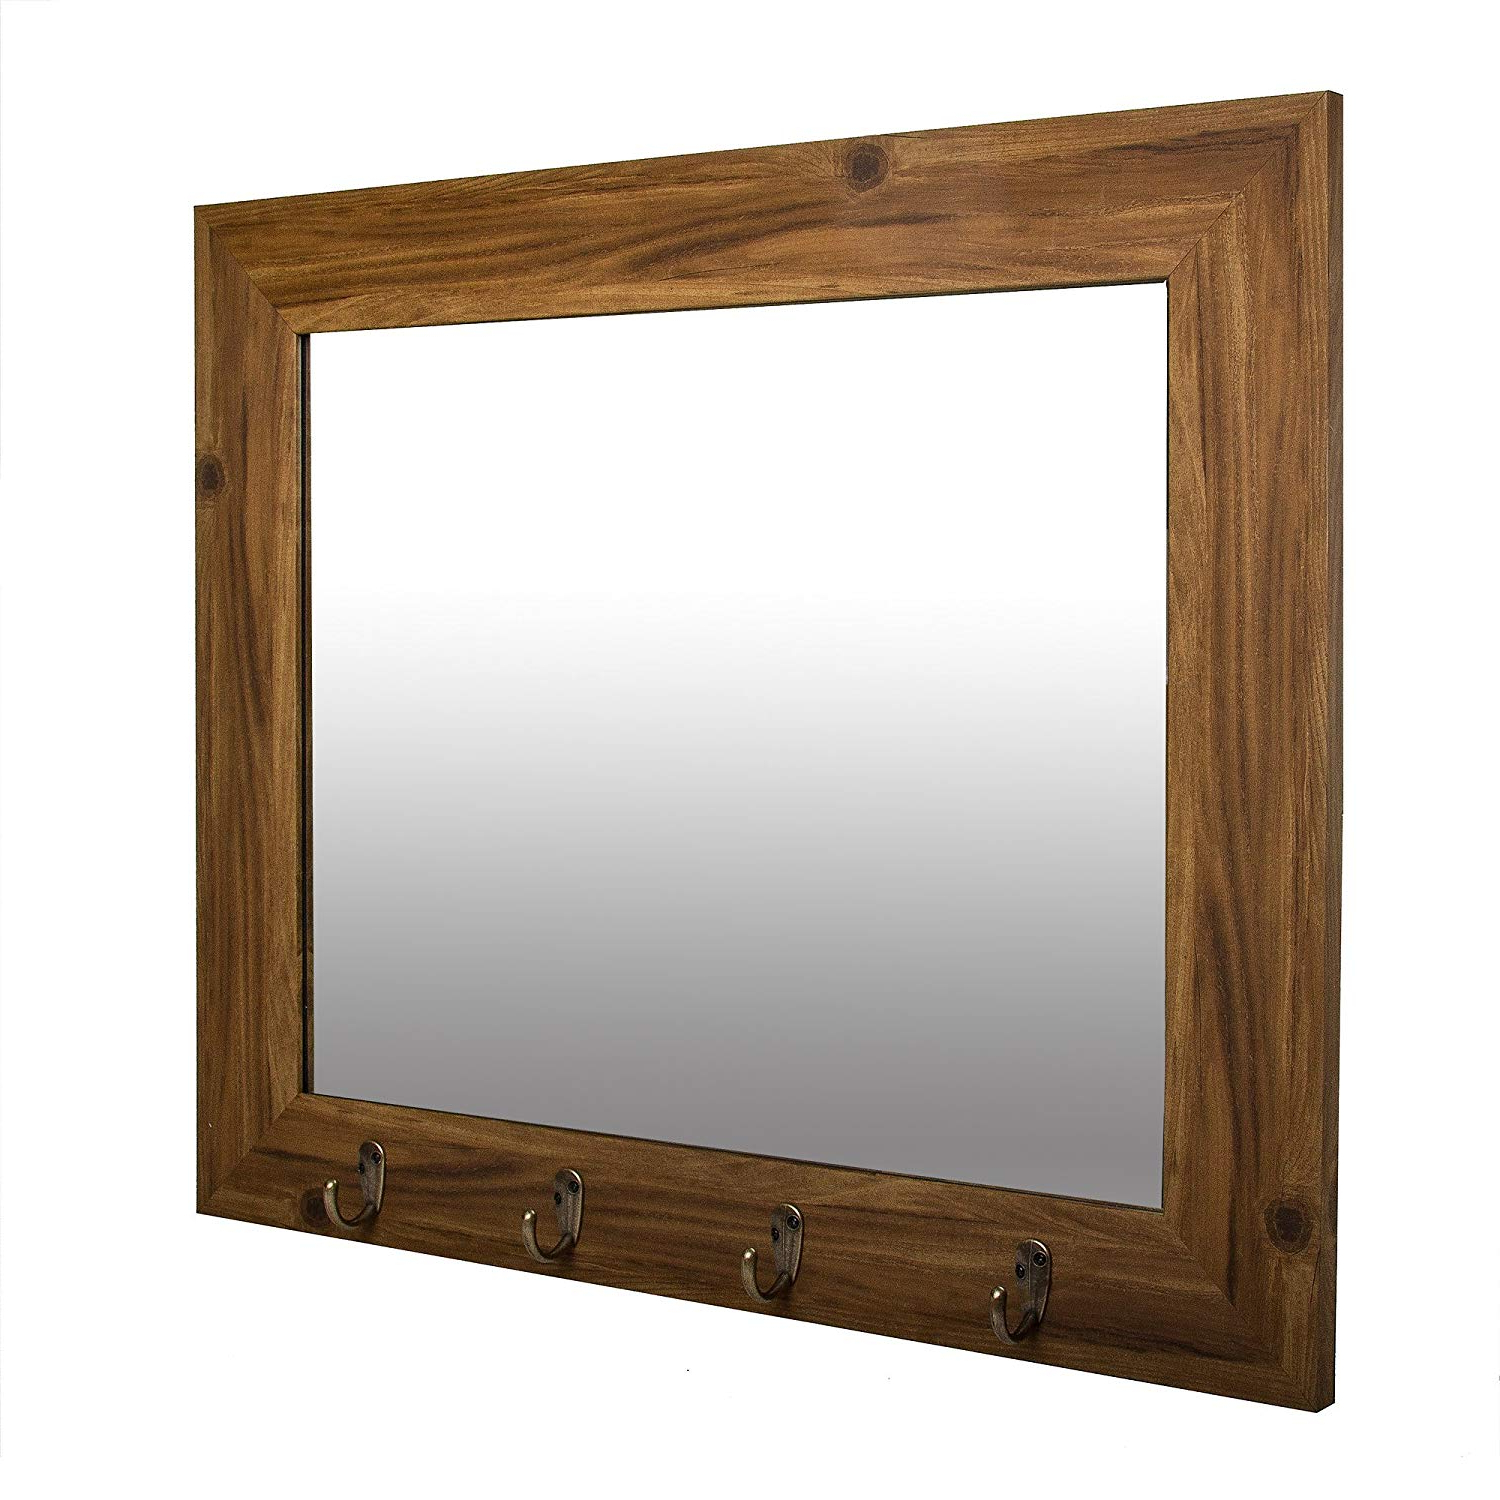 Patton Wall Decor Medium Wood Foyer Hooks Wall Mirror Within Most Current Wall Mirrors With Hooks (View 5 of 20)